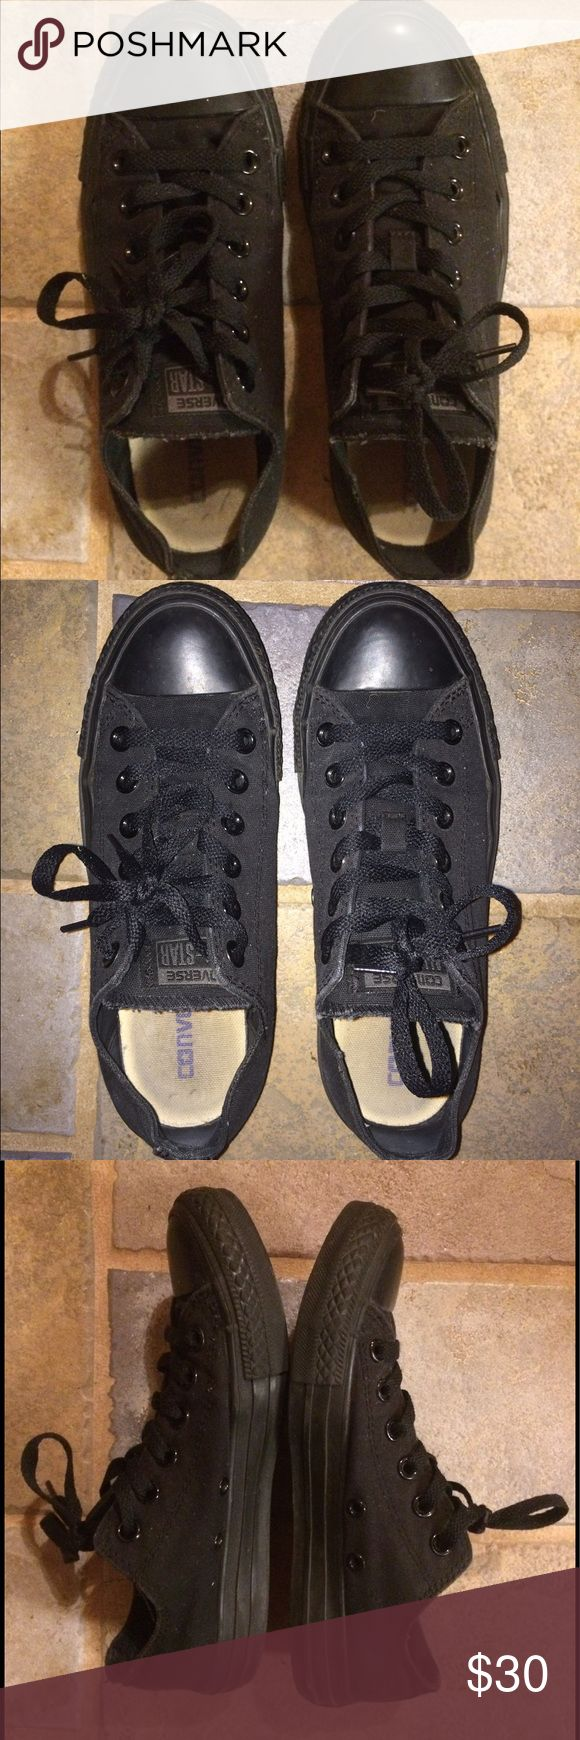 All black low top Converse size 7 I don't ever wear these so they are wasting space in my closet. I did wear them a little bit so they are not brand new. They are a size 7 in woman's and a size 5 in men's. Nothing wrong with them just no longer want them. Converse Shoes Sneakers